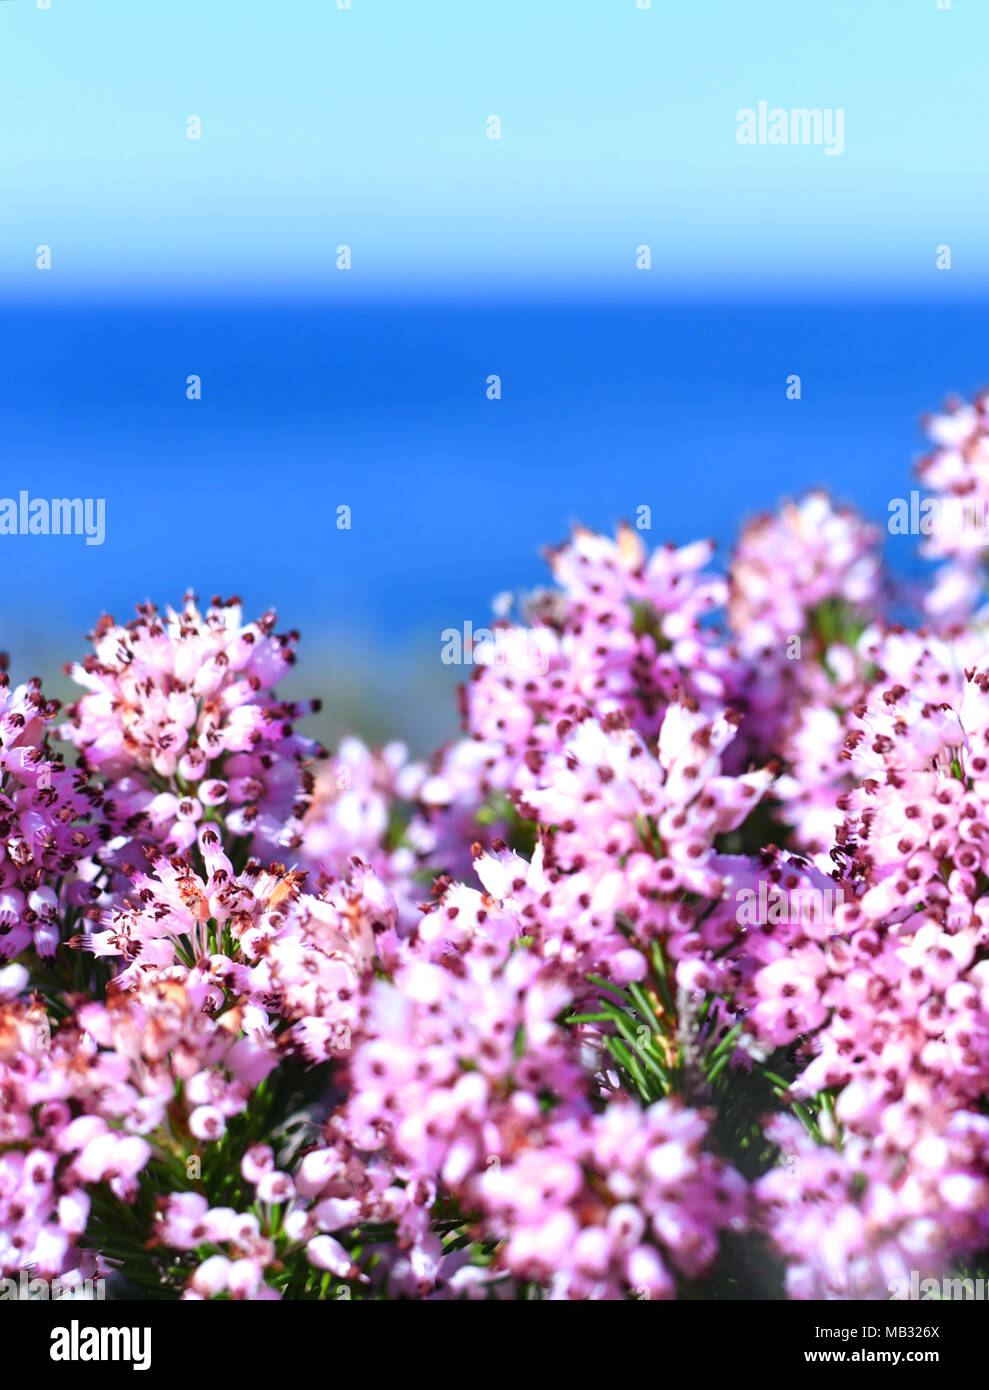 Pink heather or erica flowers, closeup shot of blooming heather and ...